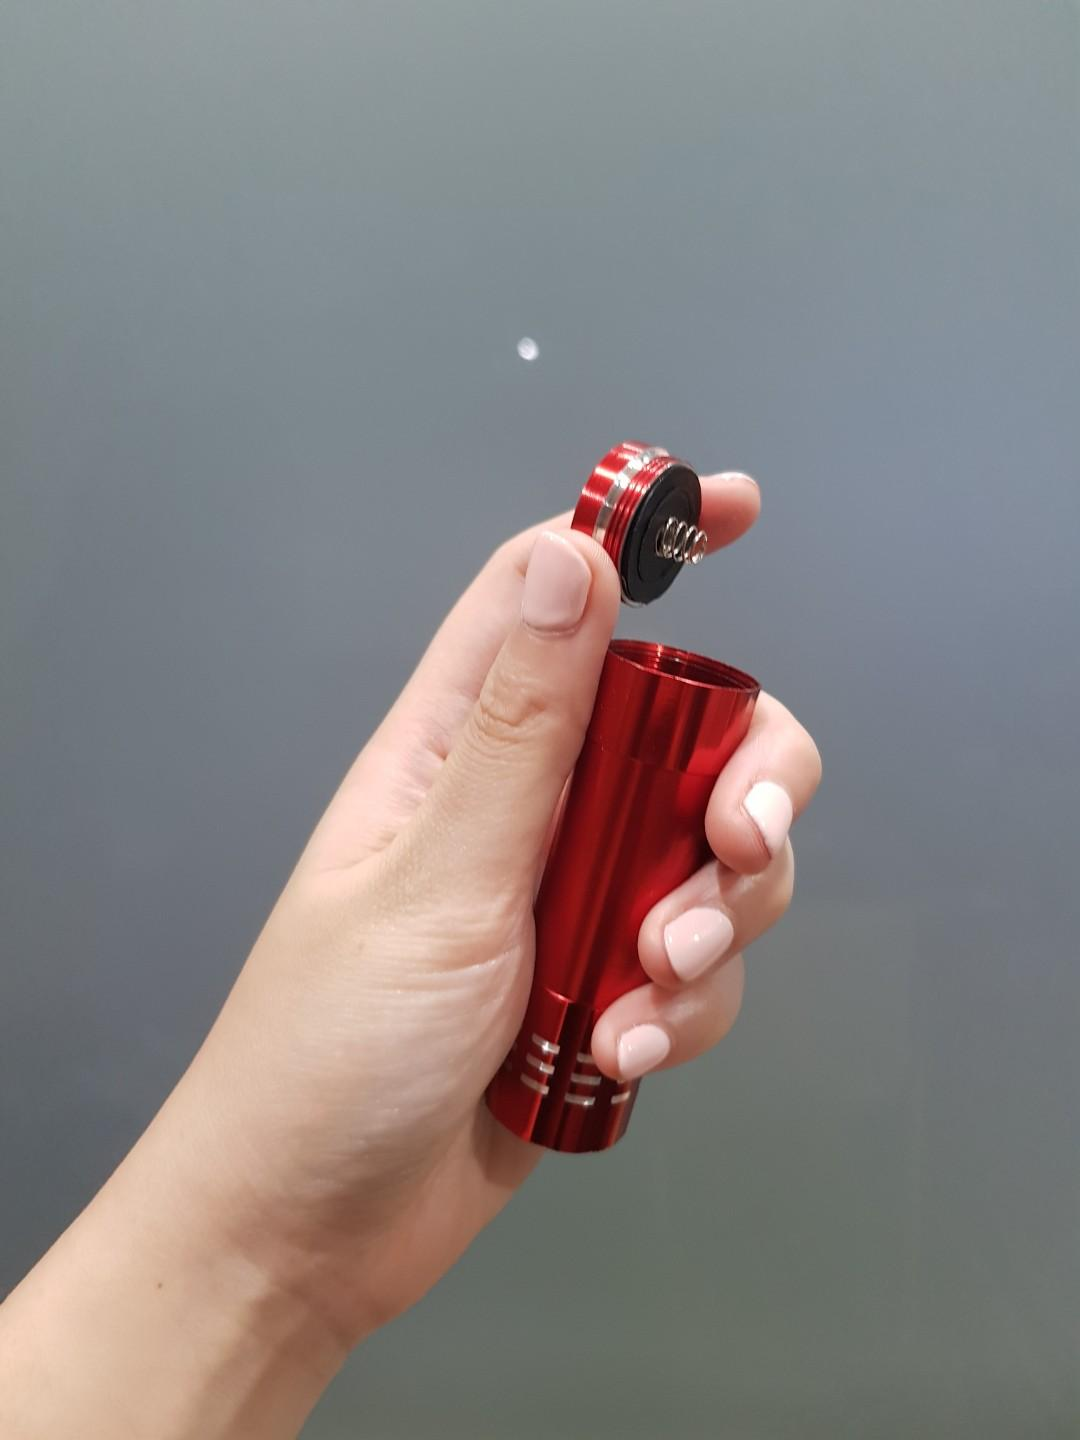 UV Torch light for UV Resin Crafts (batteries included